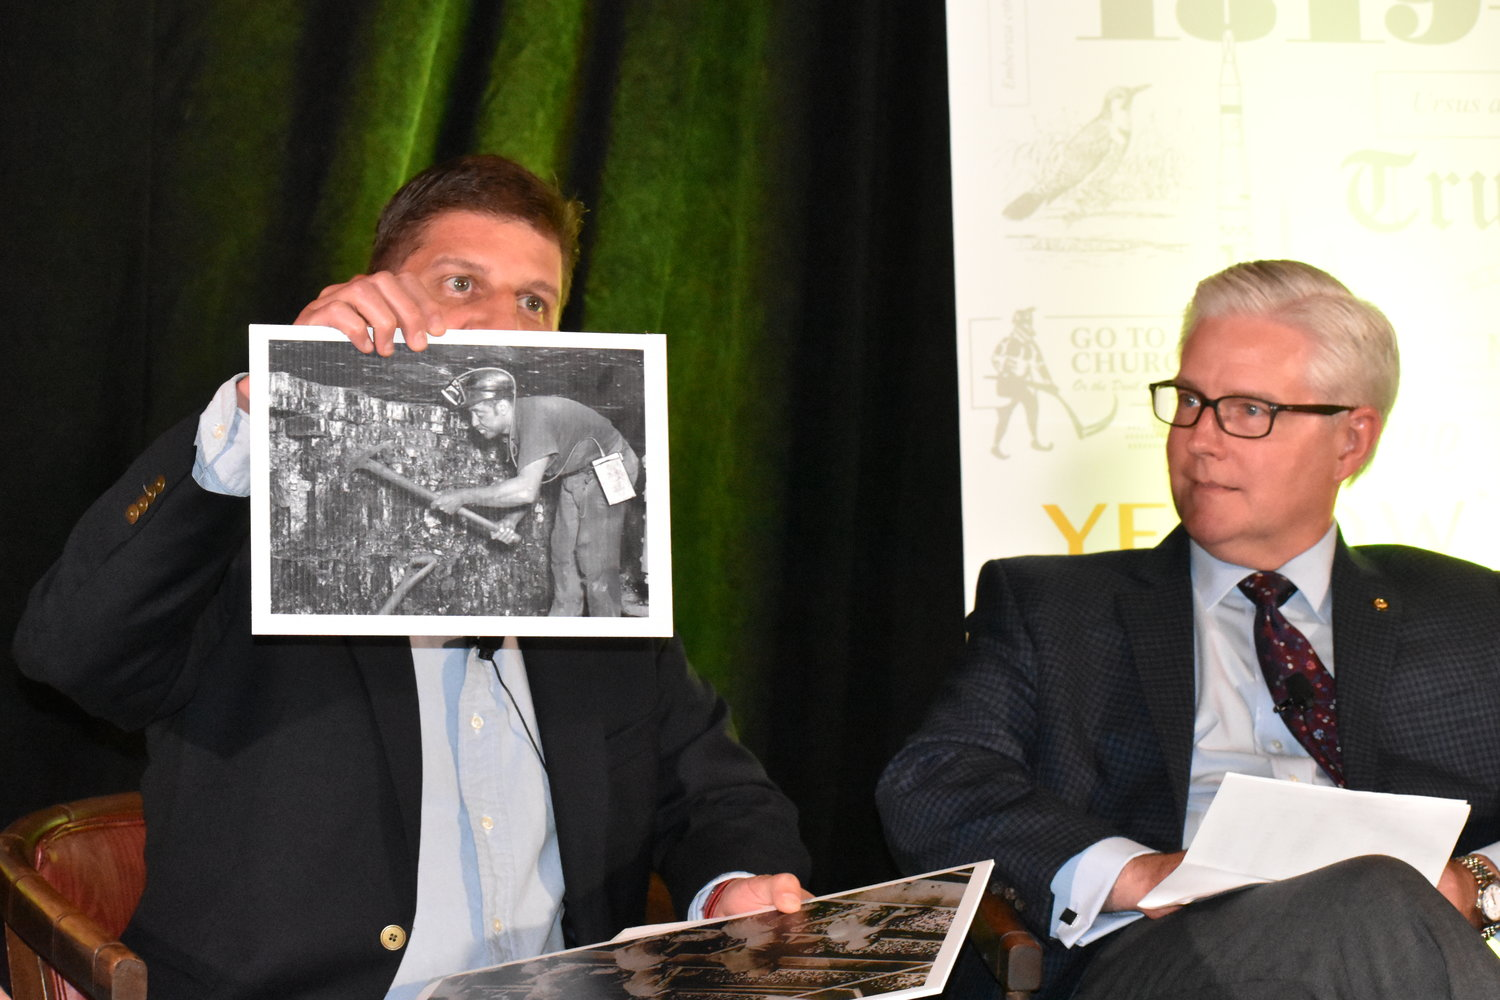 Philip K. Saunders, vice president of engineering for Warrior Met Coal, holds up an historic coal mining photo a panel discussion on the Alabama coal industry Thursday at Musgrove Country Club. Senate Majority Leader Greg Reed, R-Jasper, watches.